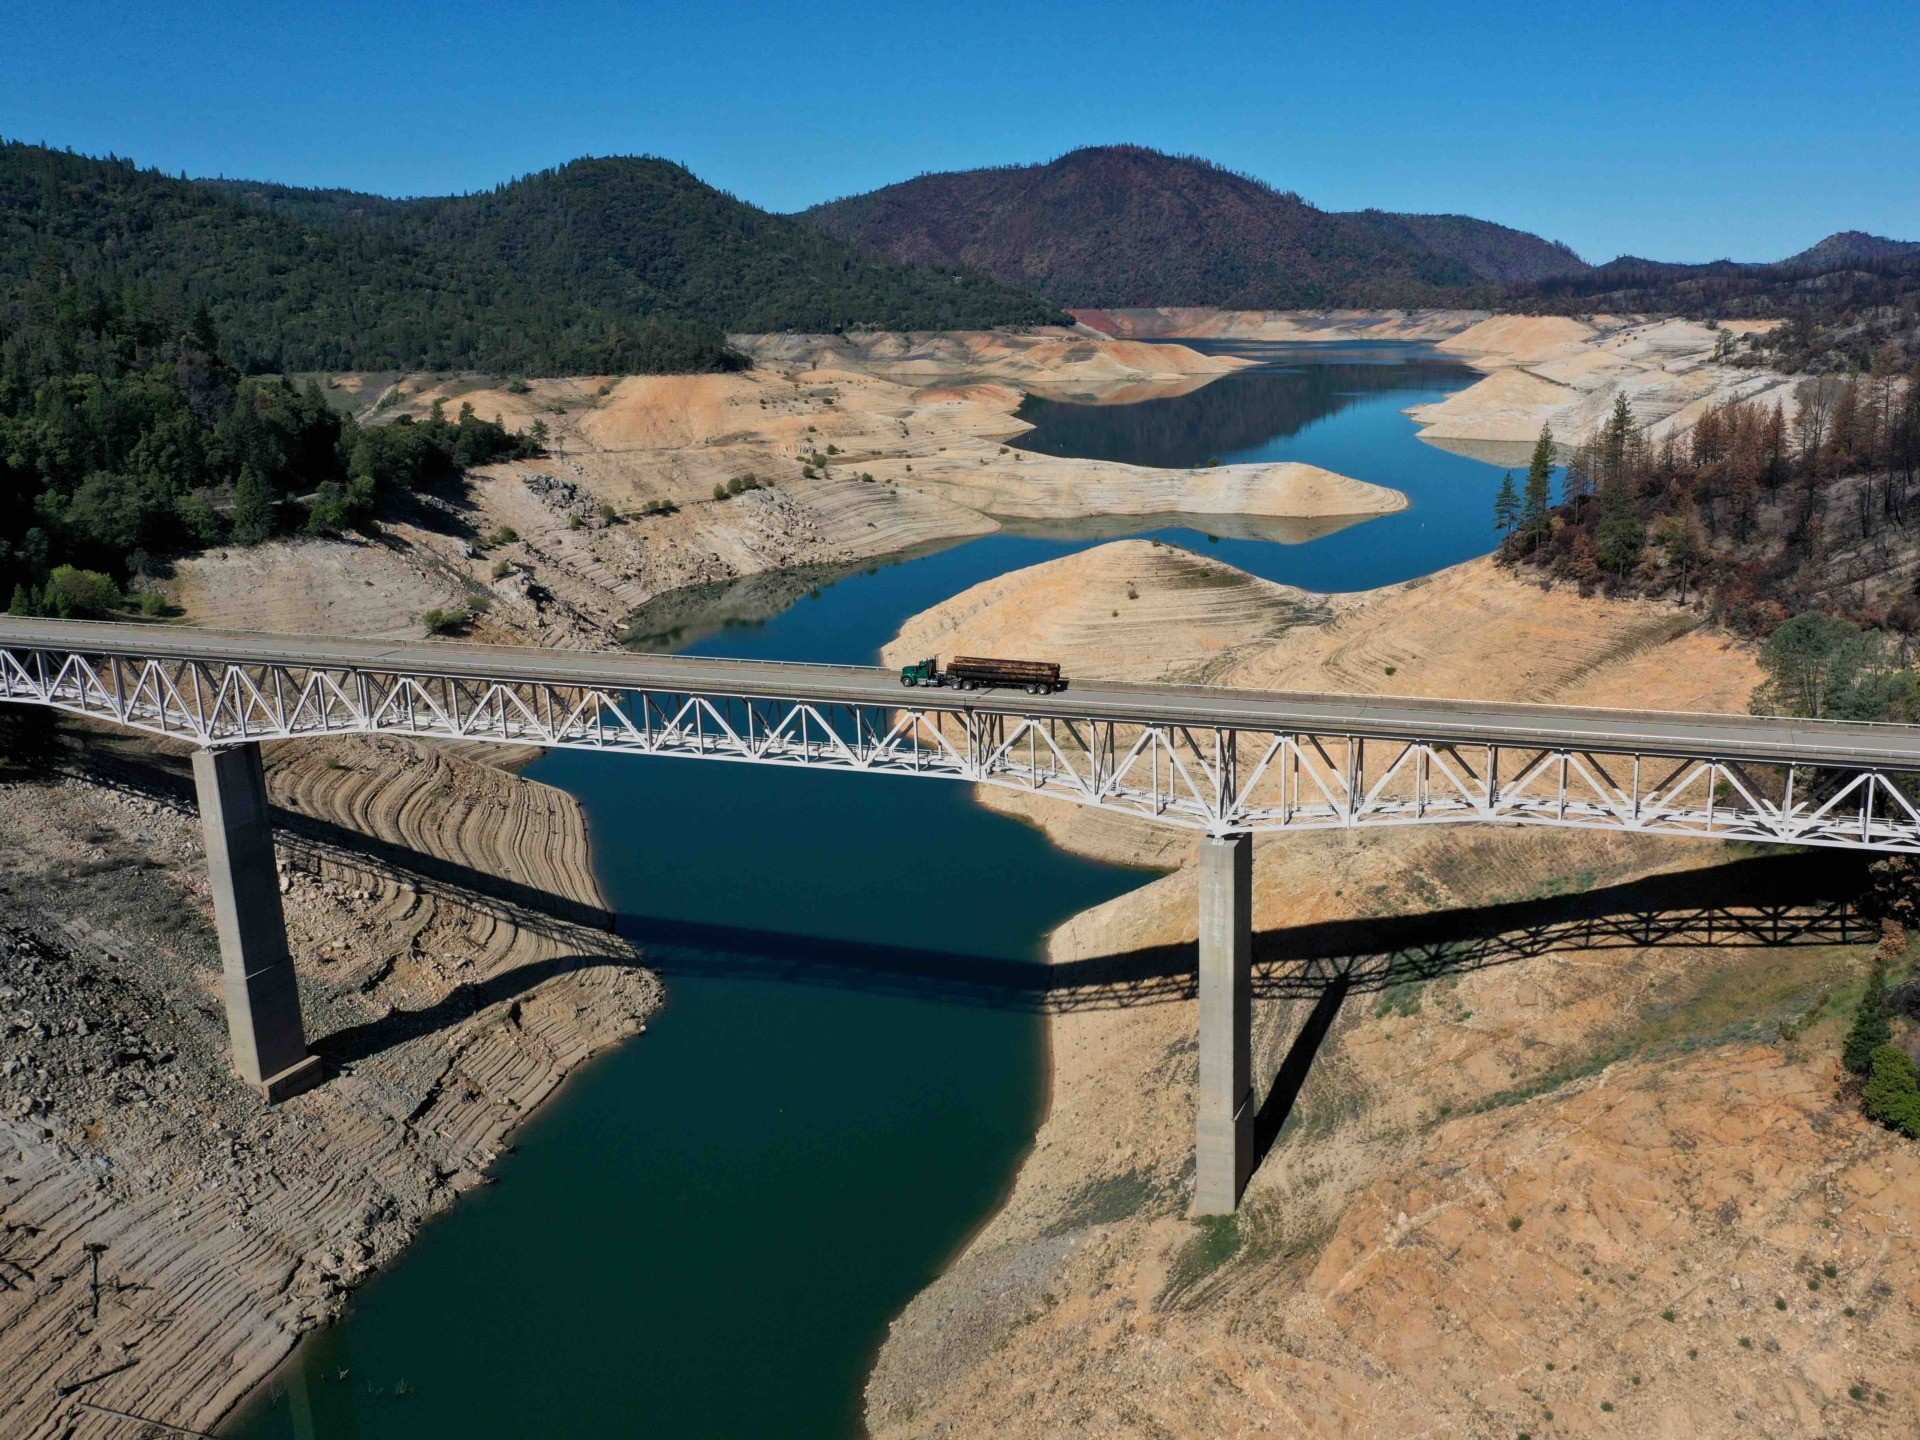 PHOTOS: Drought Returns to California as Lake Oroville Drops Dramatically 1